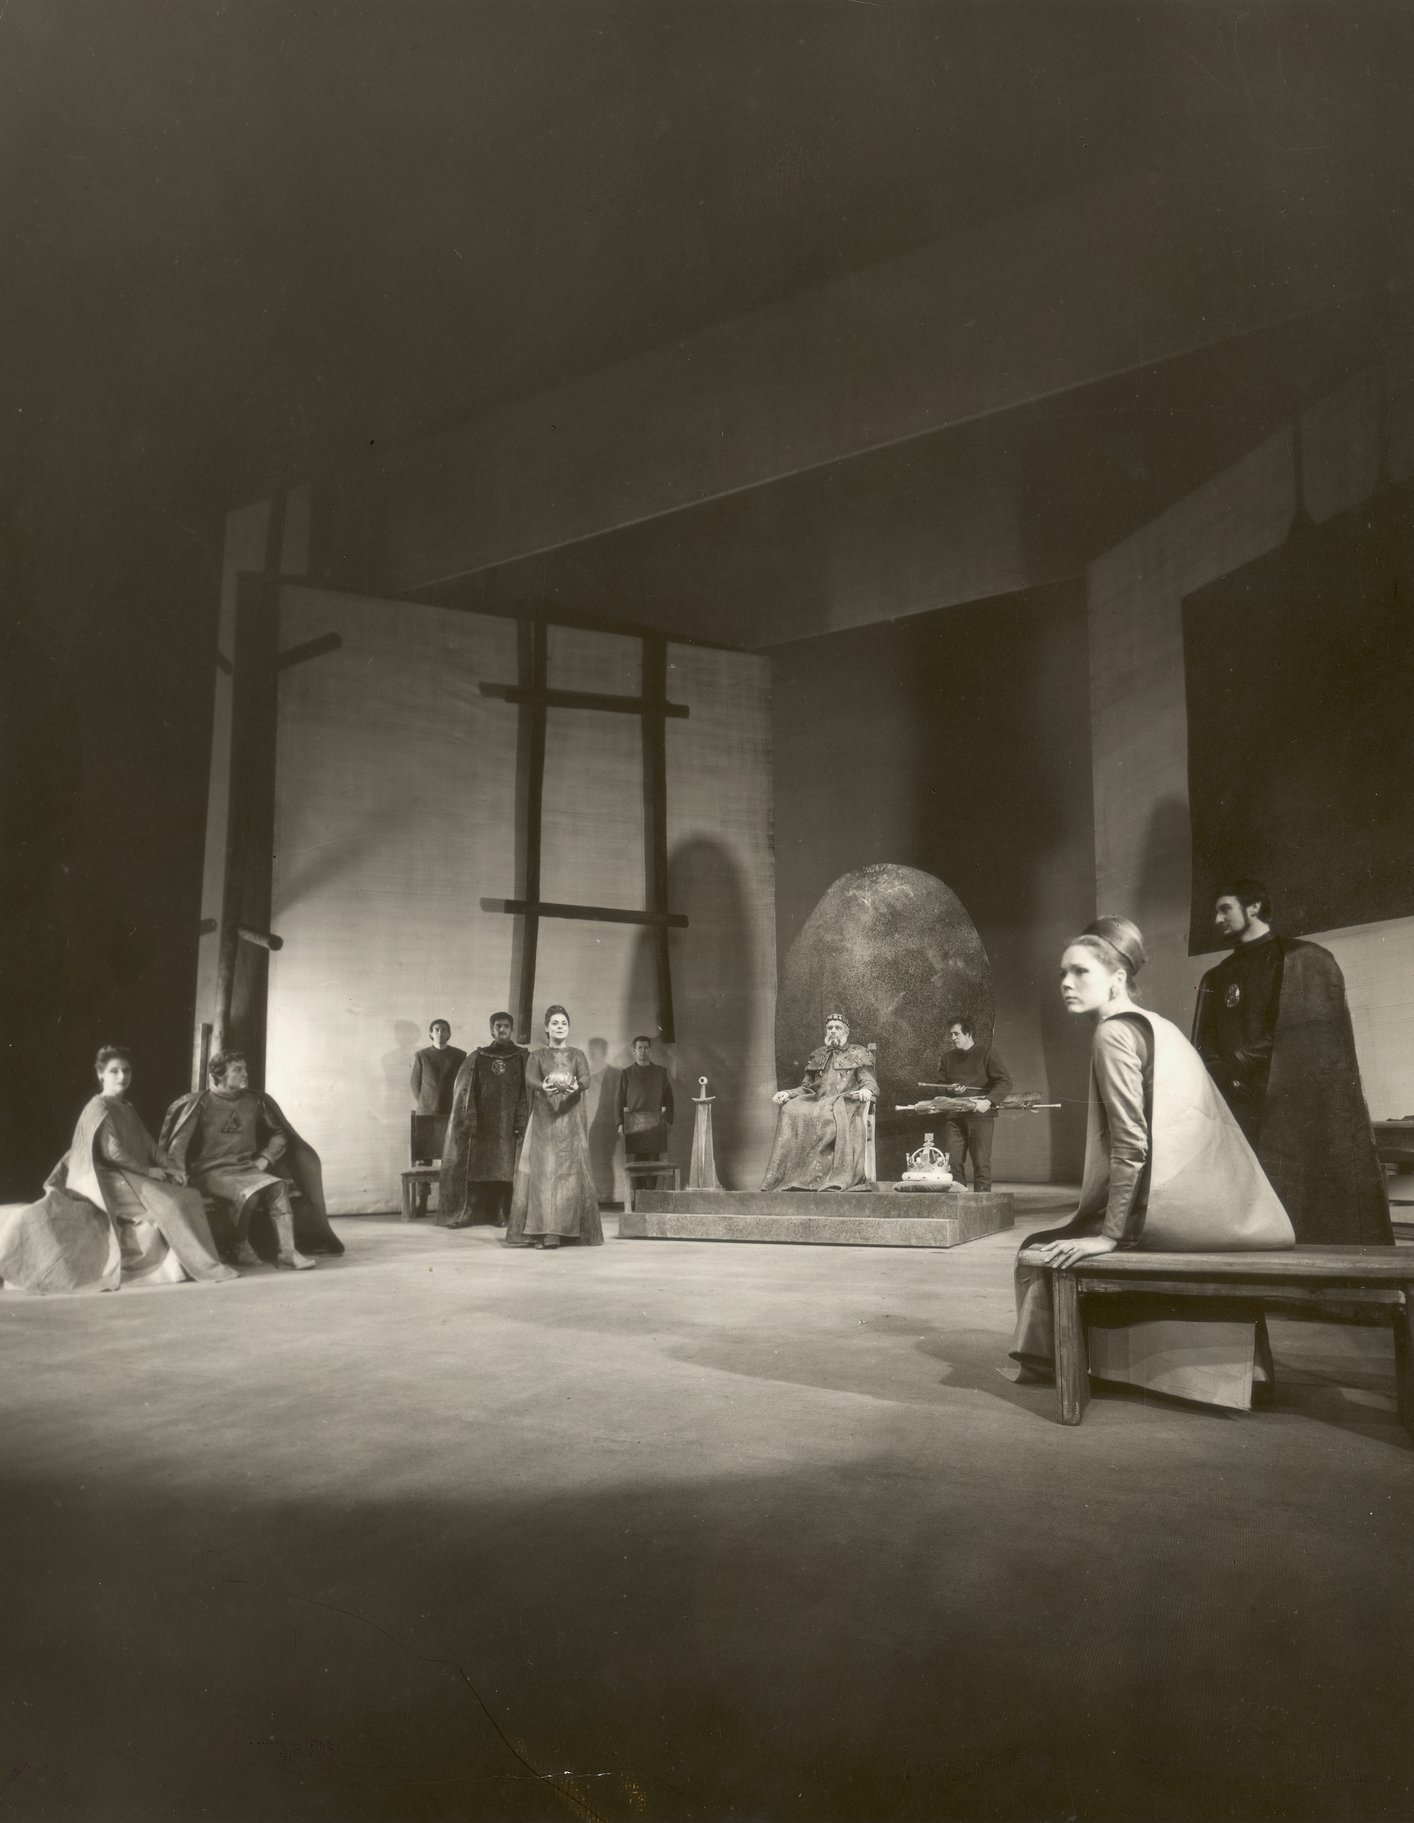 From left to right Regan (Patience Collier), Cornwall (Tony Church), Kent (Tom Fleming) Goneril (Irene Worth, holding sphere) King Lear (Paul Scofield), Cordelia (Diana Rigg) and Albany (Peter Jeffery).